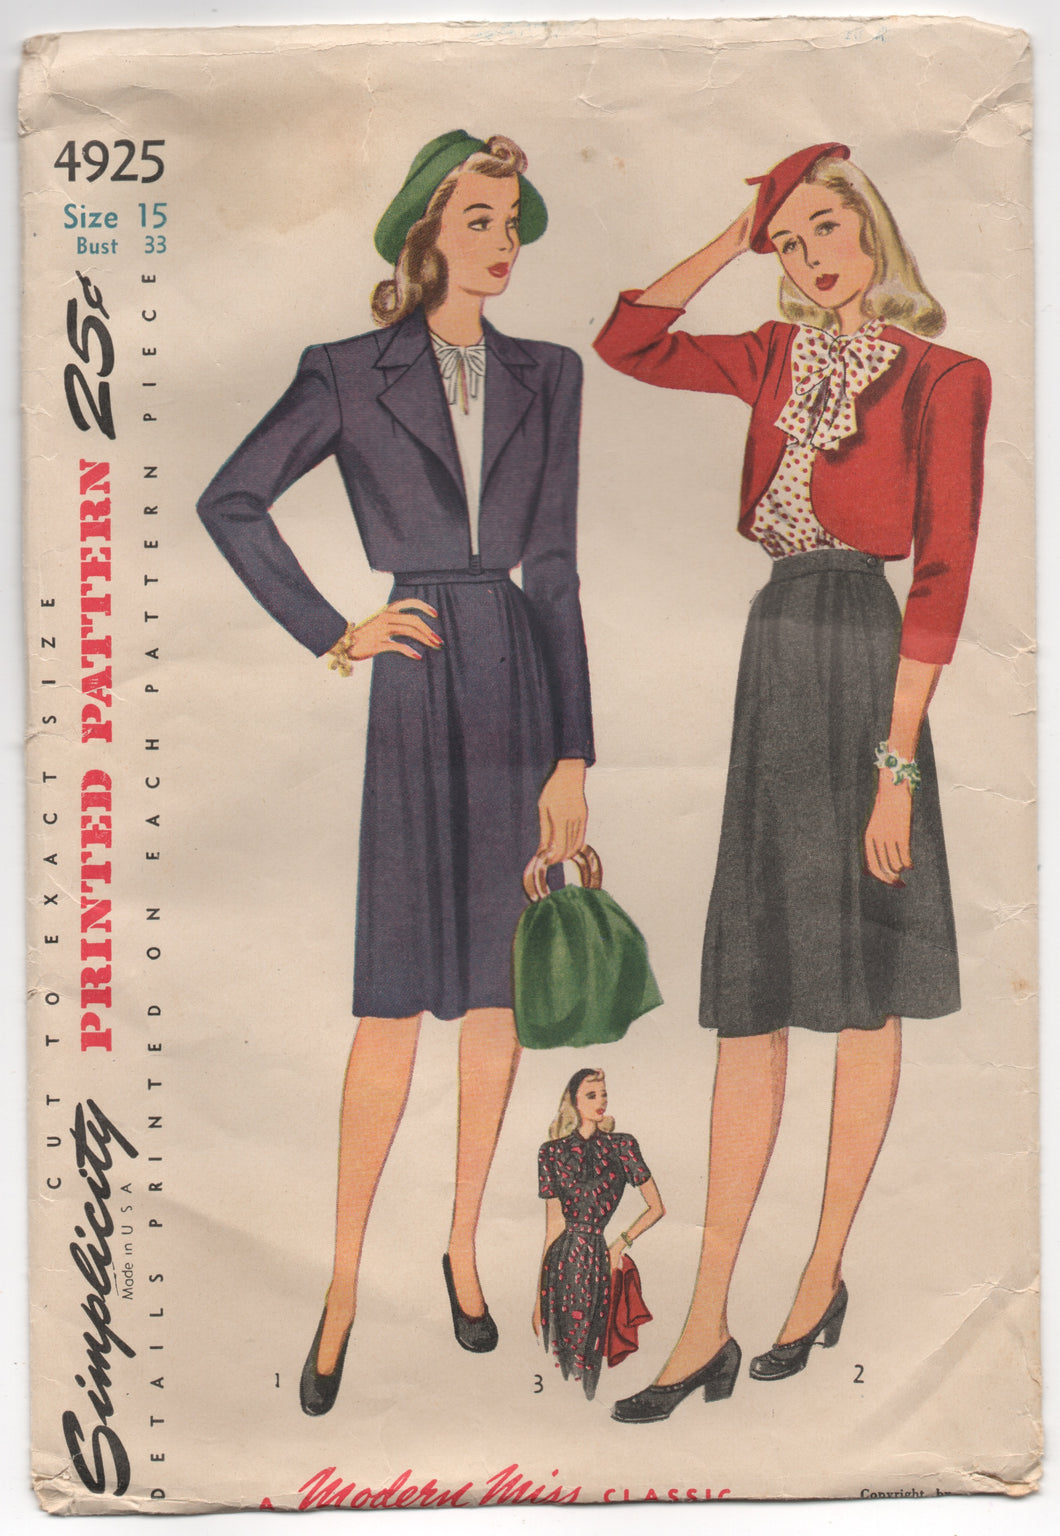 1940's Simplicity Bolero, Blouse with Bow, and A line Skirt - Bust 33